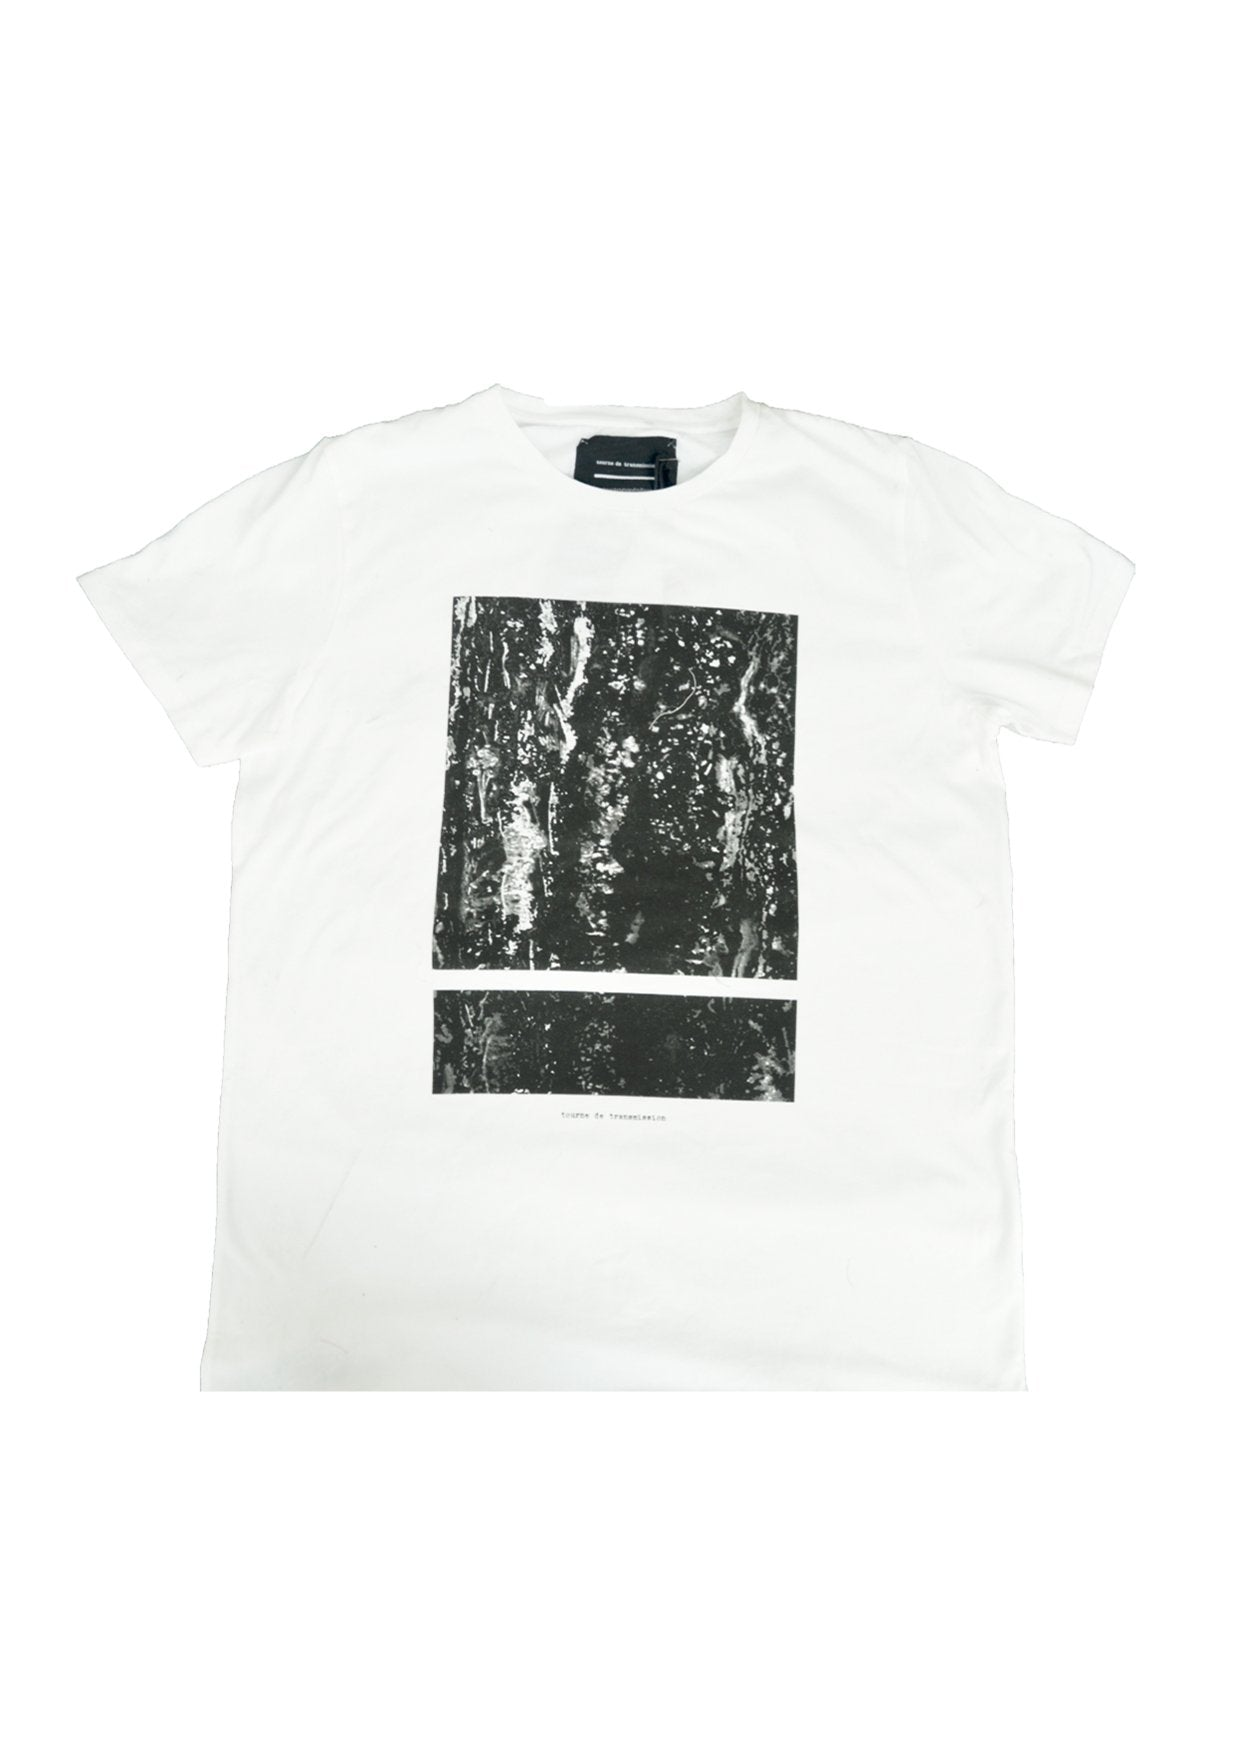 SS15 tee - white split box marble print